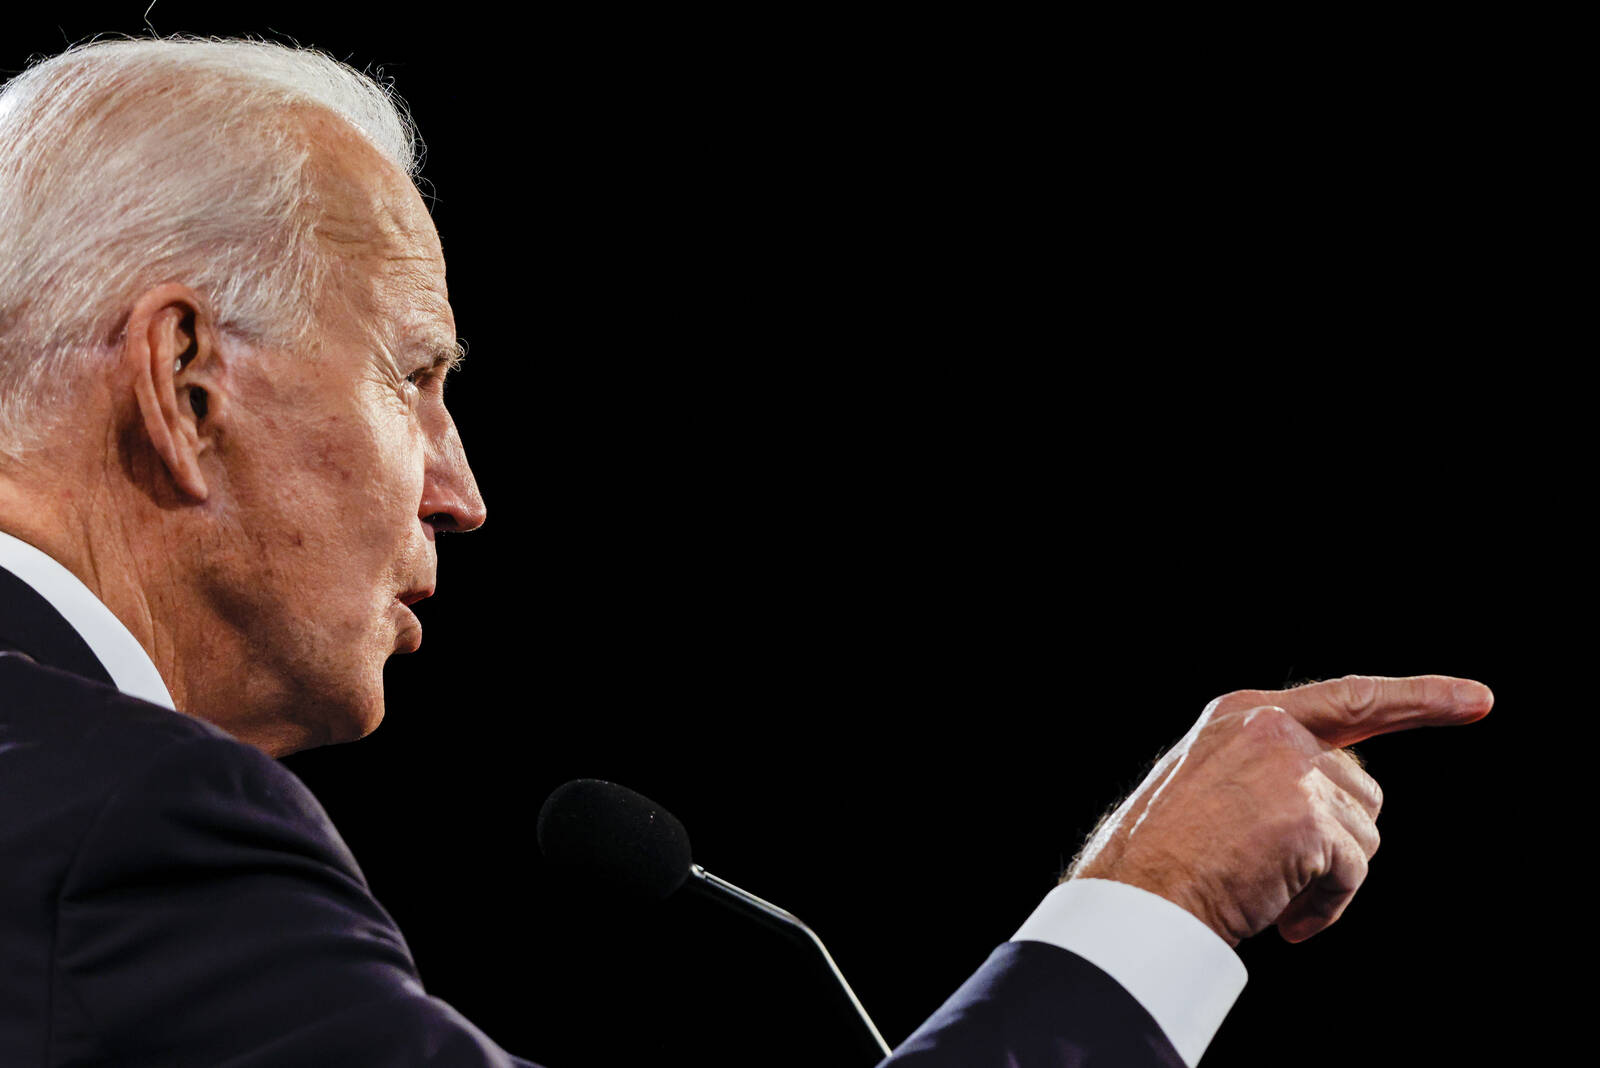 Democratic presidential nominee Joe Biden debates U.S. President Donald Trump at Belmont University on Oct. 22, 2020 in Nashville, Tennessee. Credit: Jim Bourg-Pool/Getty Images